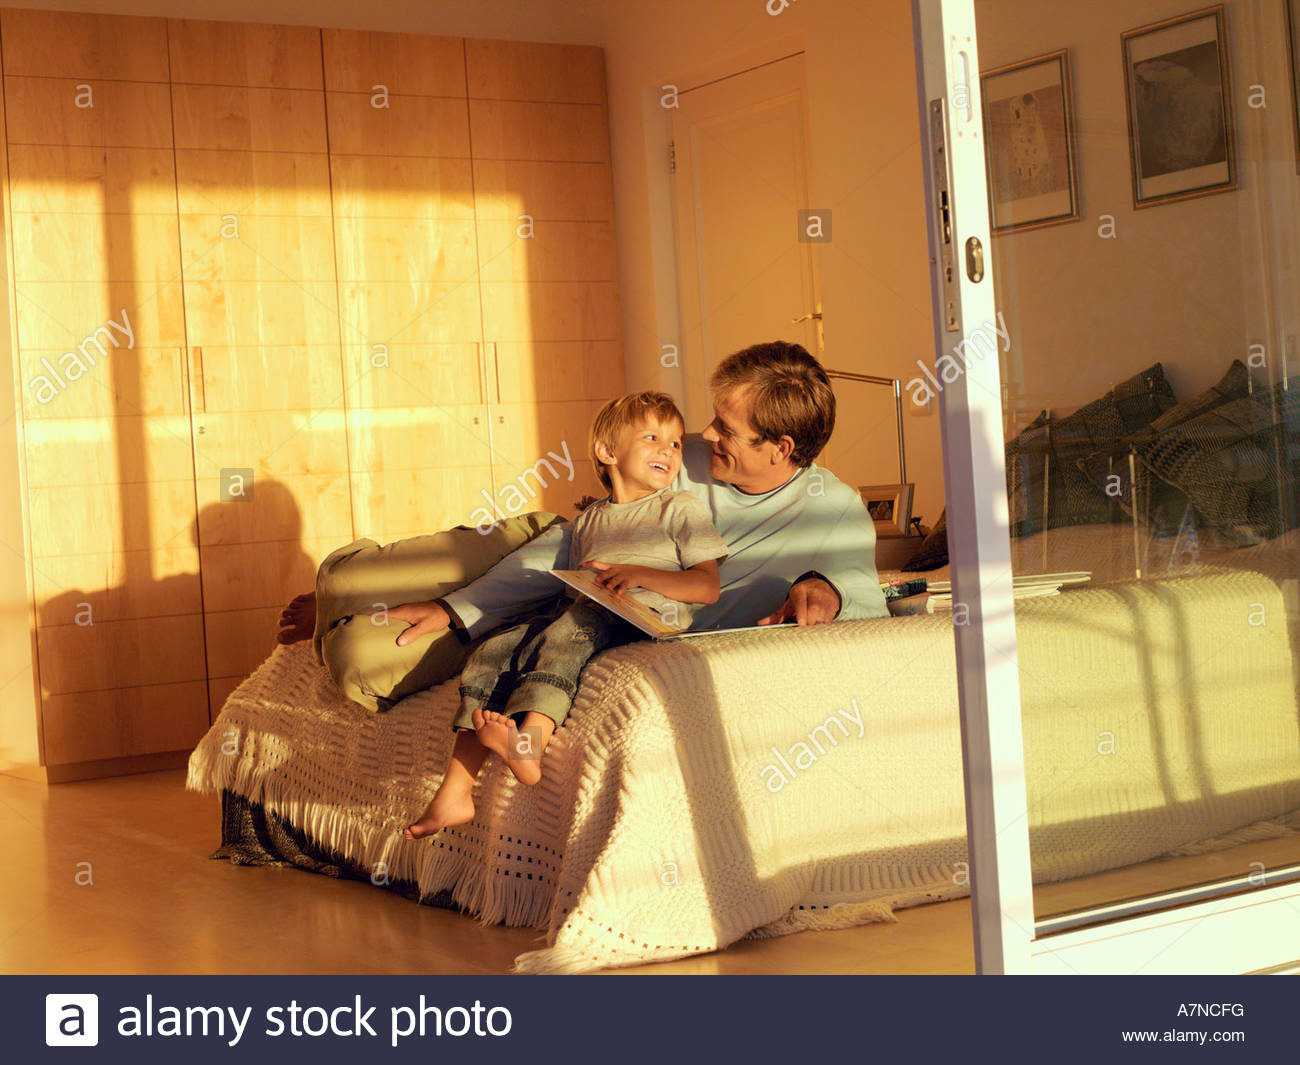 Father and son 5 7 sitting on bed looking at photo album view through open sliding doors - Stock Image